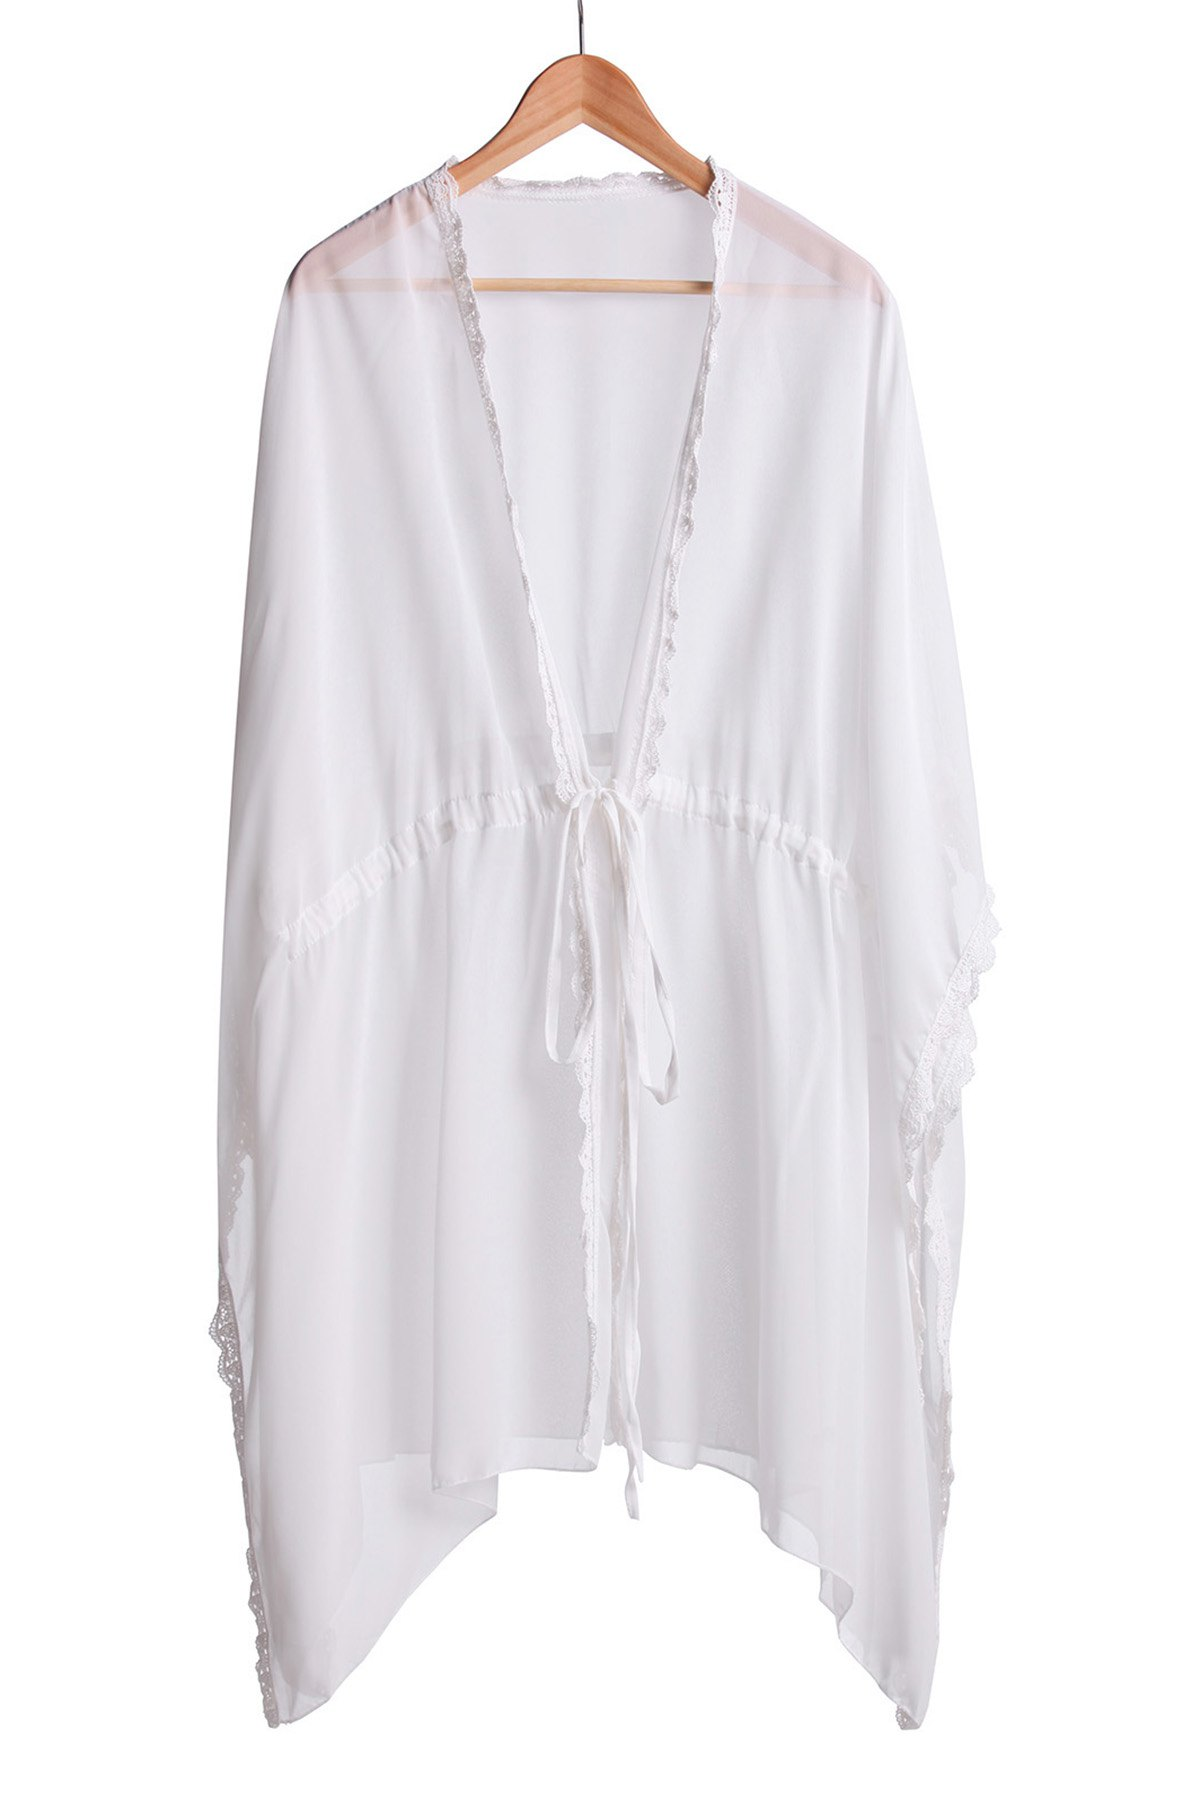 Sexy Lacework Splicing See-Through 3/4 Sleeve Women's Cover-Up